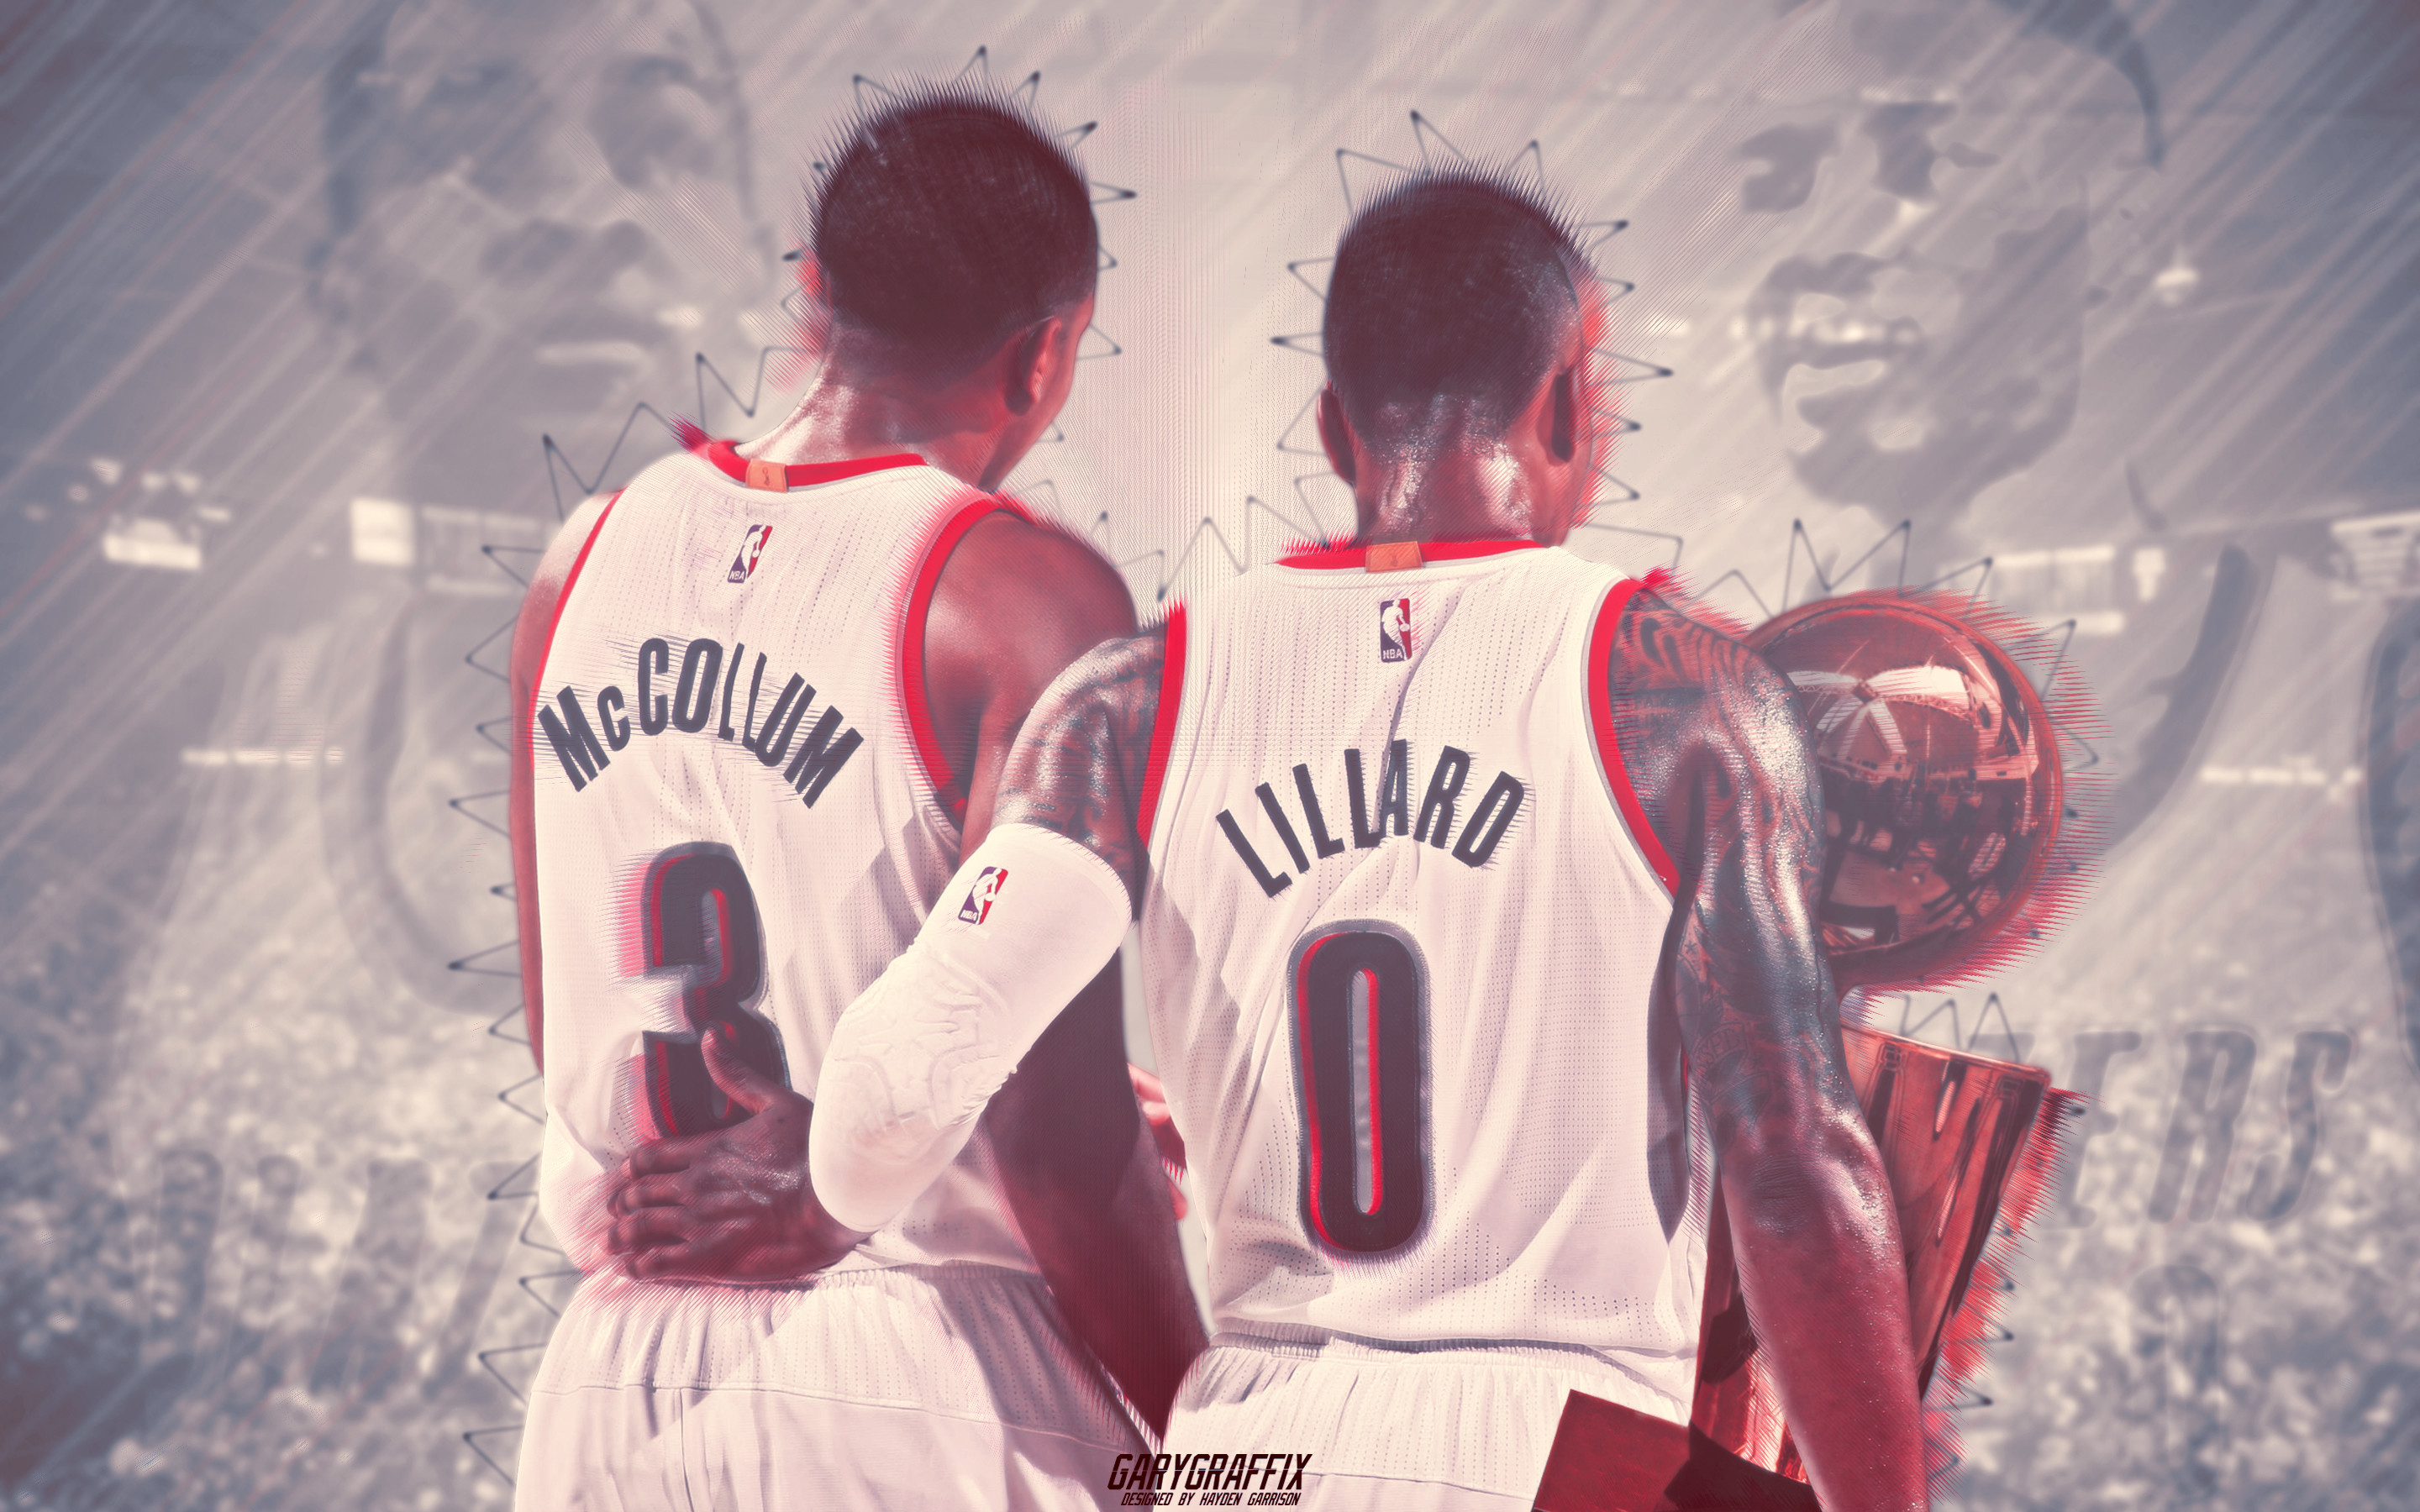 2880x1800 NBA Finals Damian Lillard x CJ McCollum - Trailblazers Wallpaper